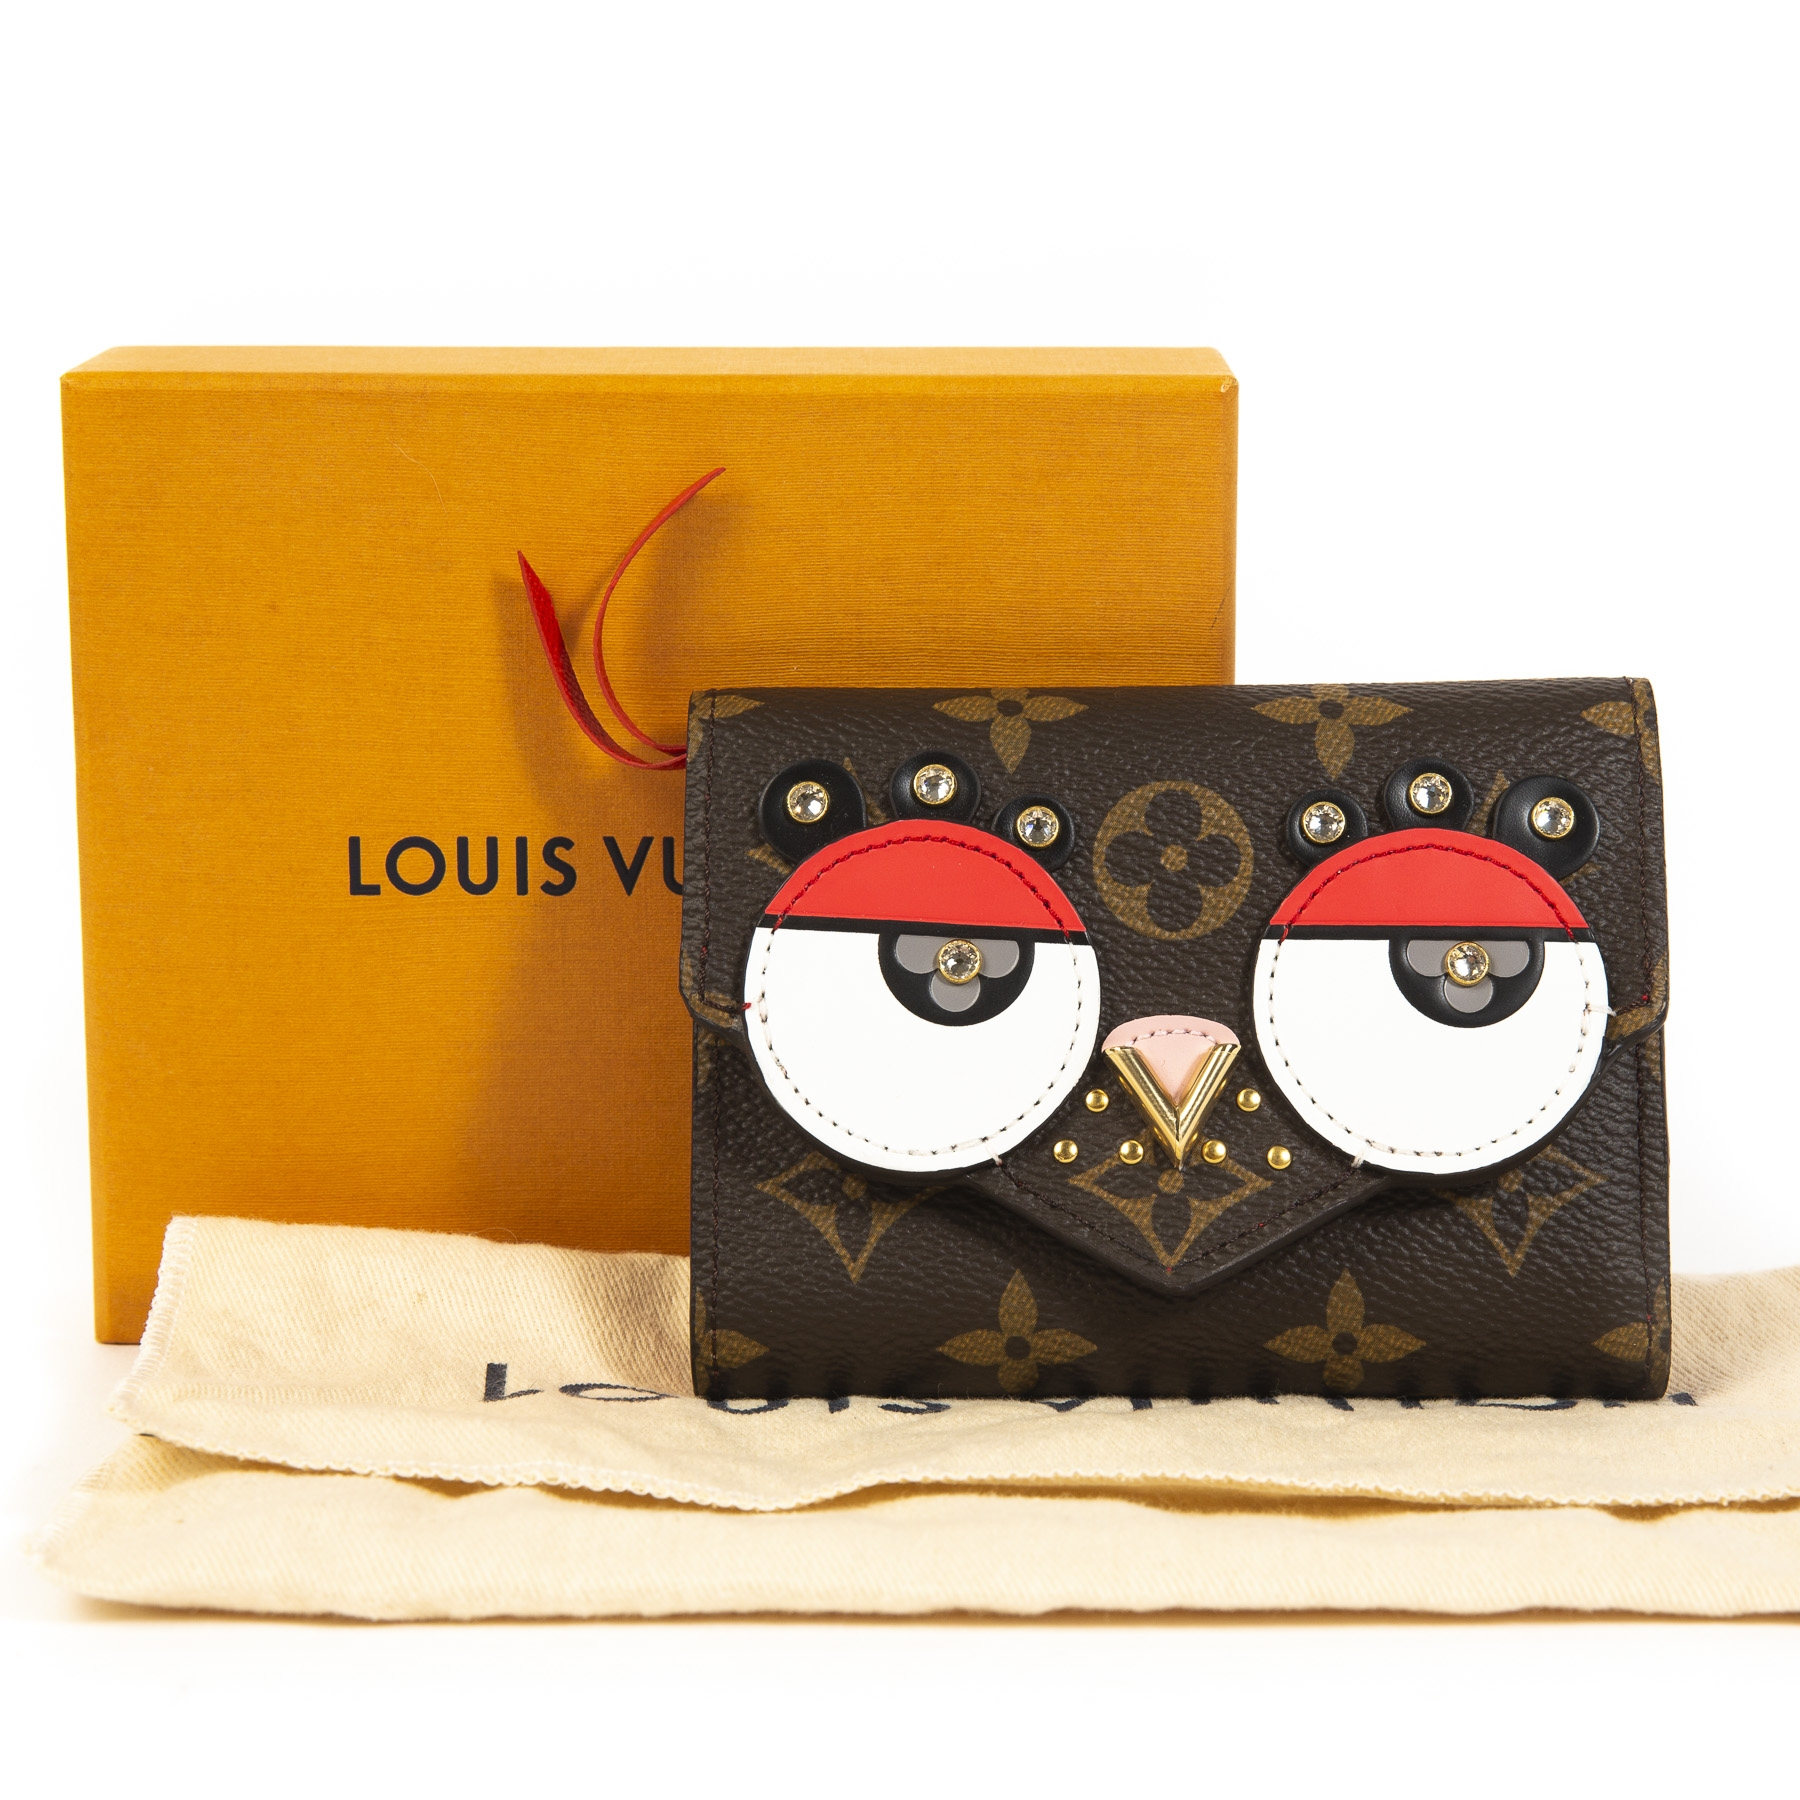 e1aa66e0cd Louis Vuitton Monogram Victorine Wallet Buy authentic secondhand Louis  Vuitton wallets at Labellov vintage webshop for the lowest price.